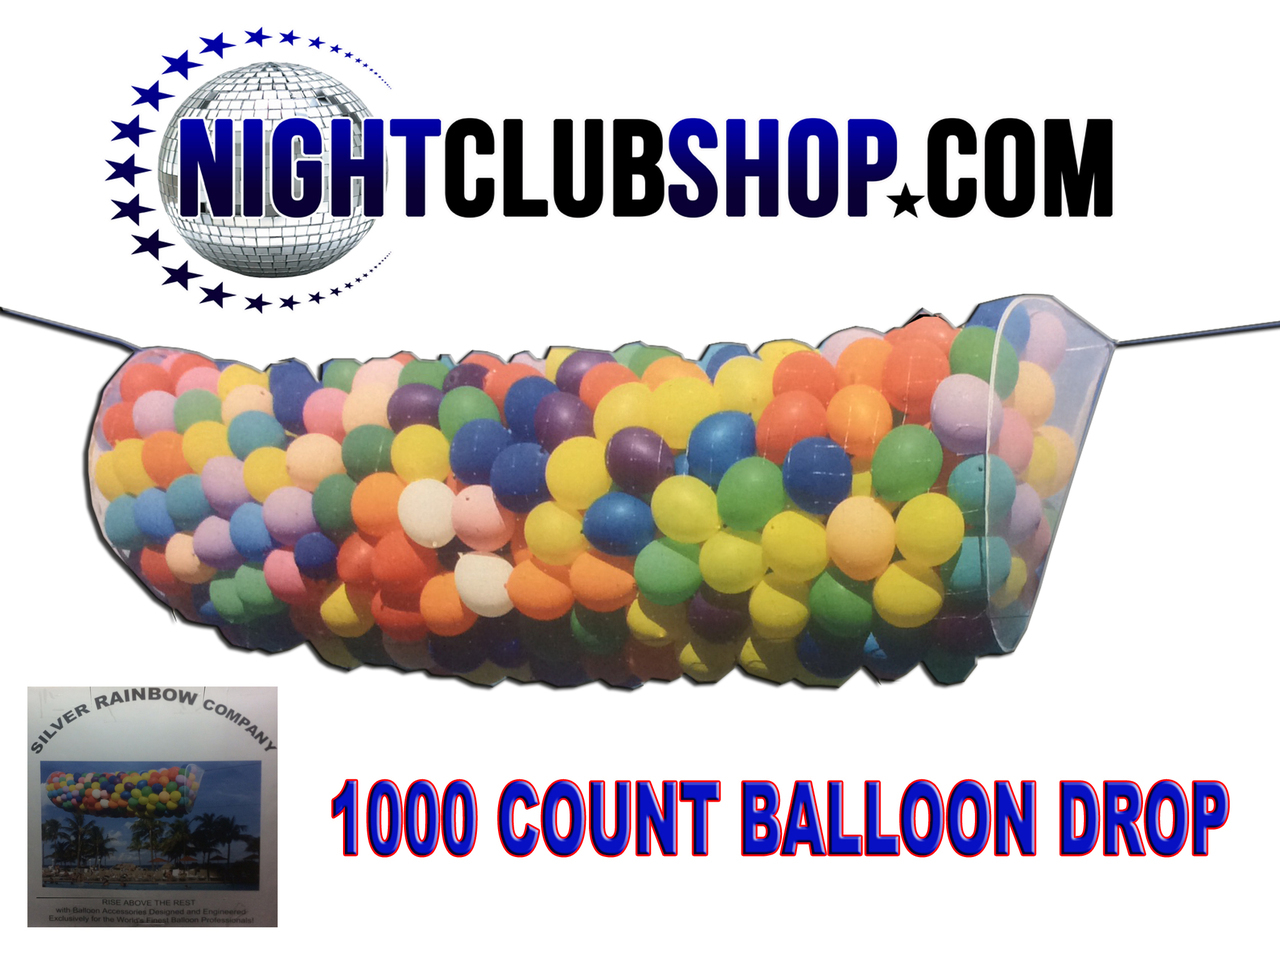 1000ct-balloon-drop-logo-08418.1427472256.1280.1280.jpg